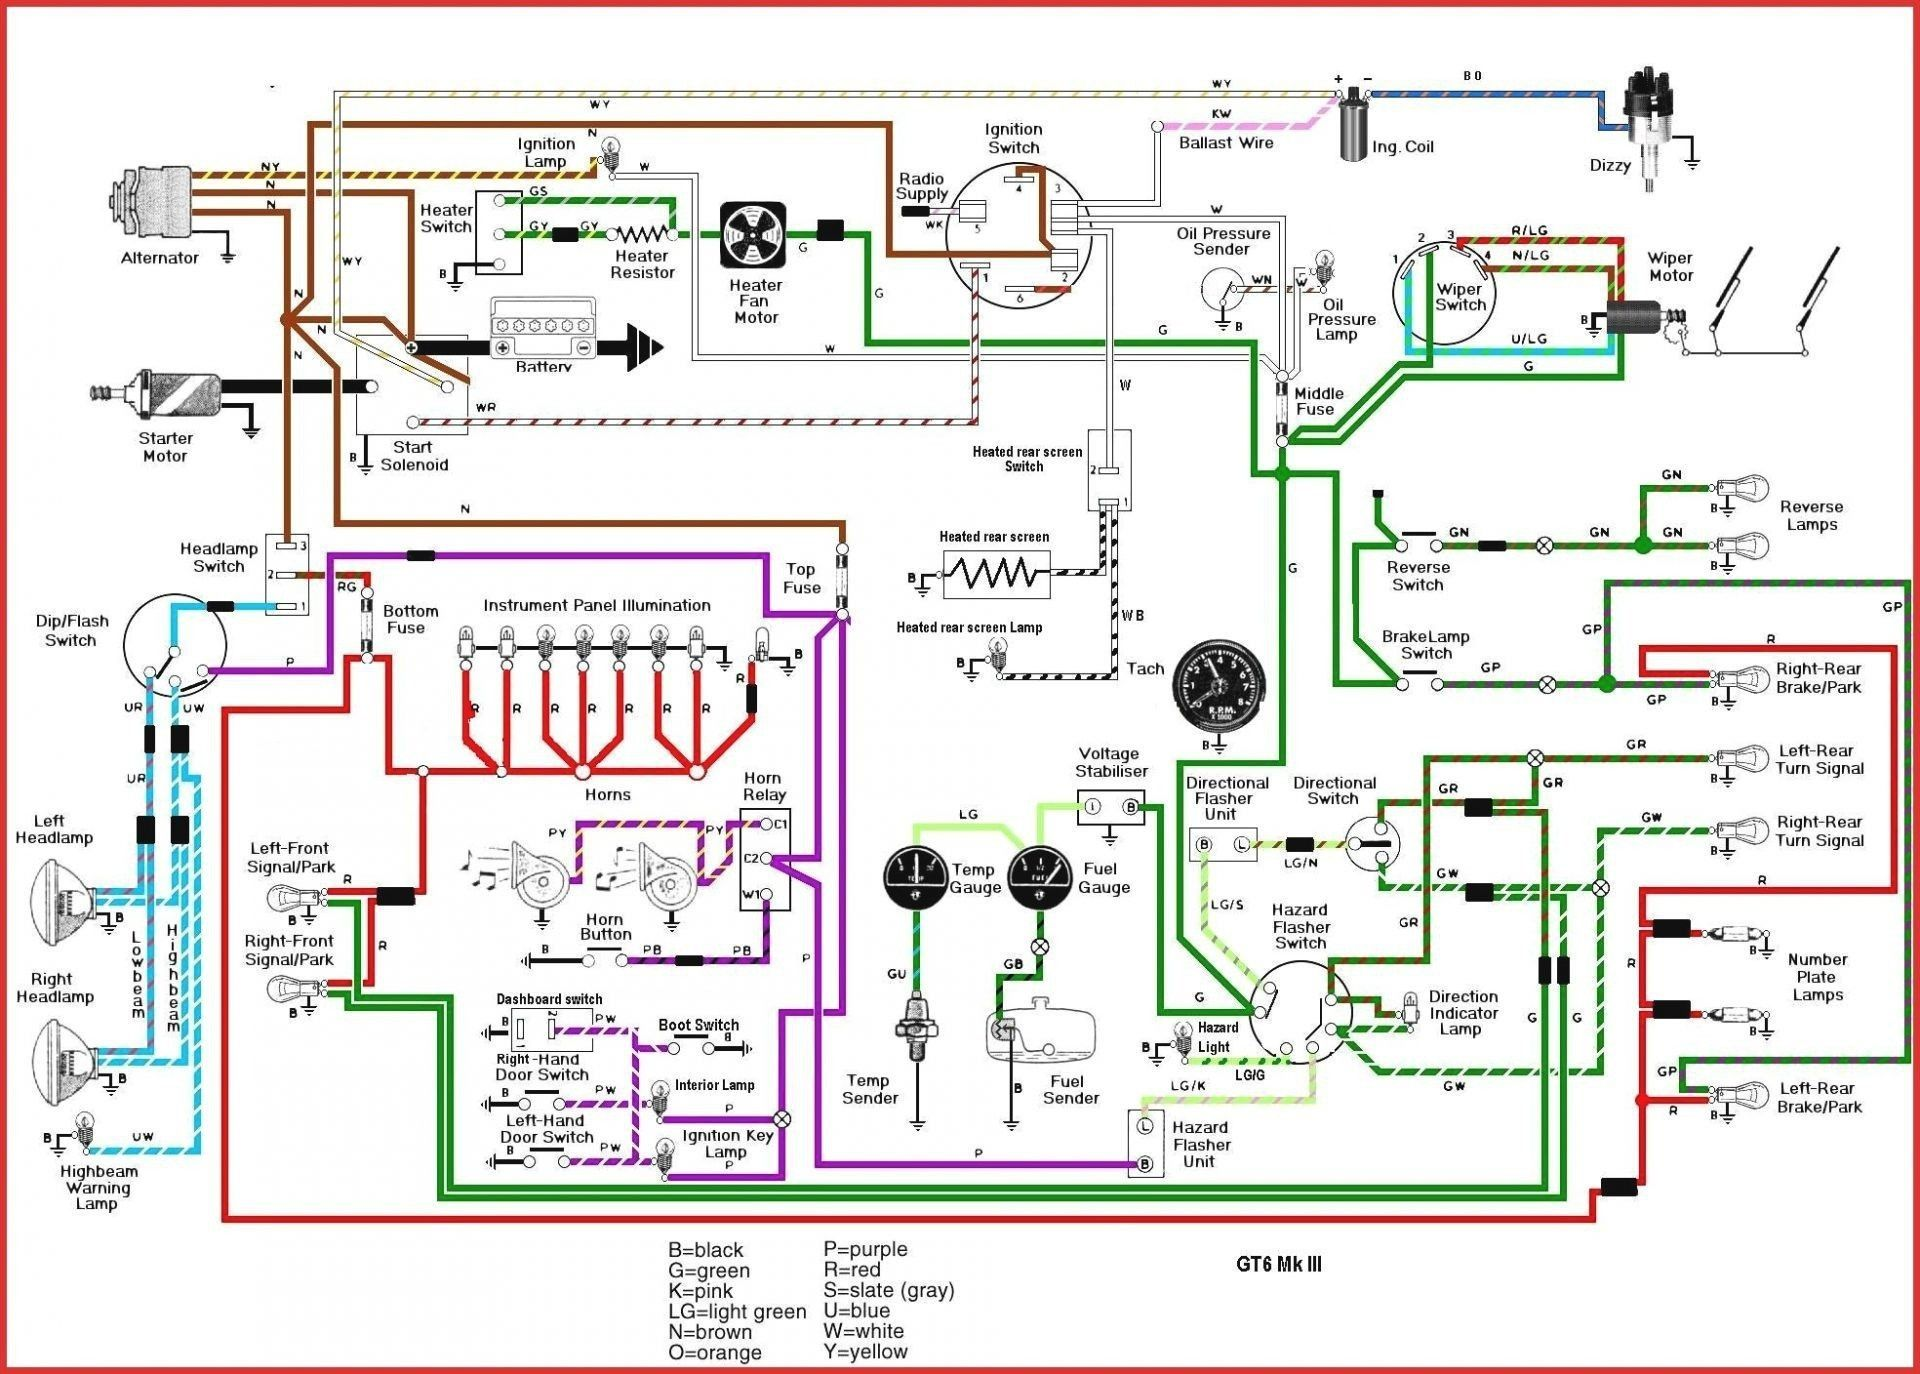 New House Electrical Wiring Basics Diagram Wiringdiagram Diagramming Diagramm Visu Electrical Circuit Diagram Electrical Diagram Electrical Wiring Diagram